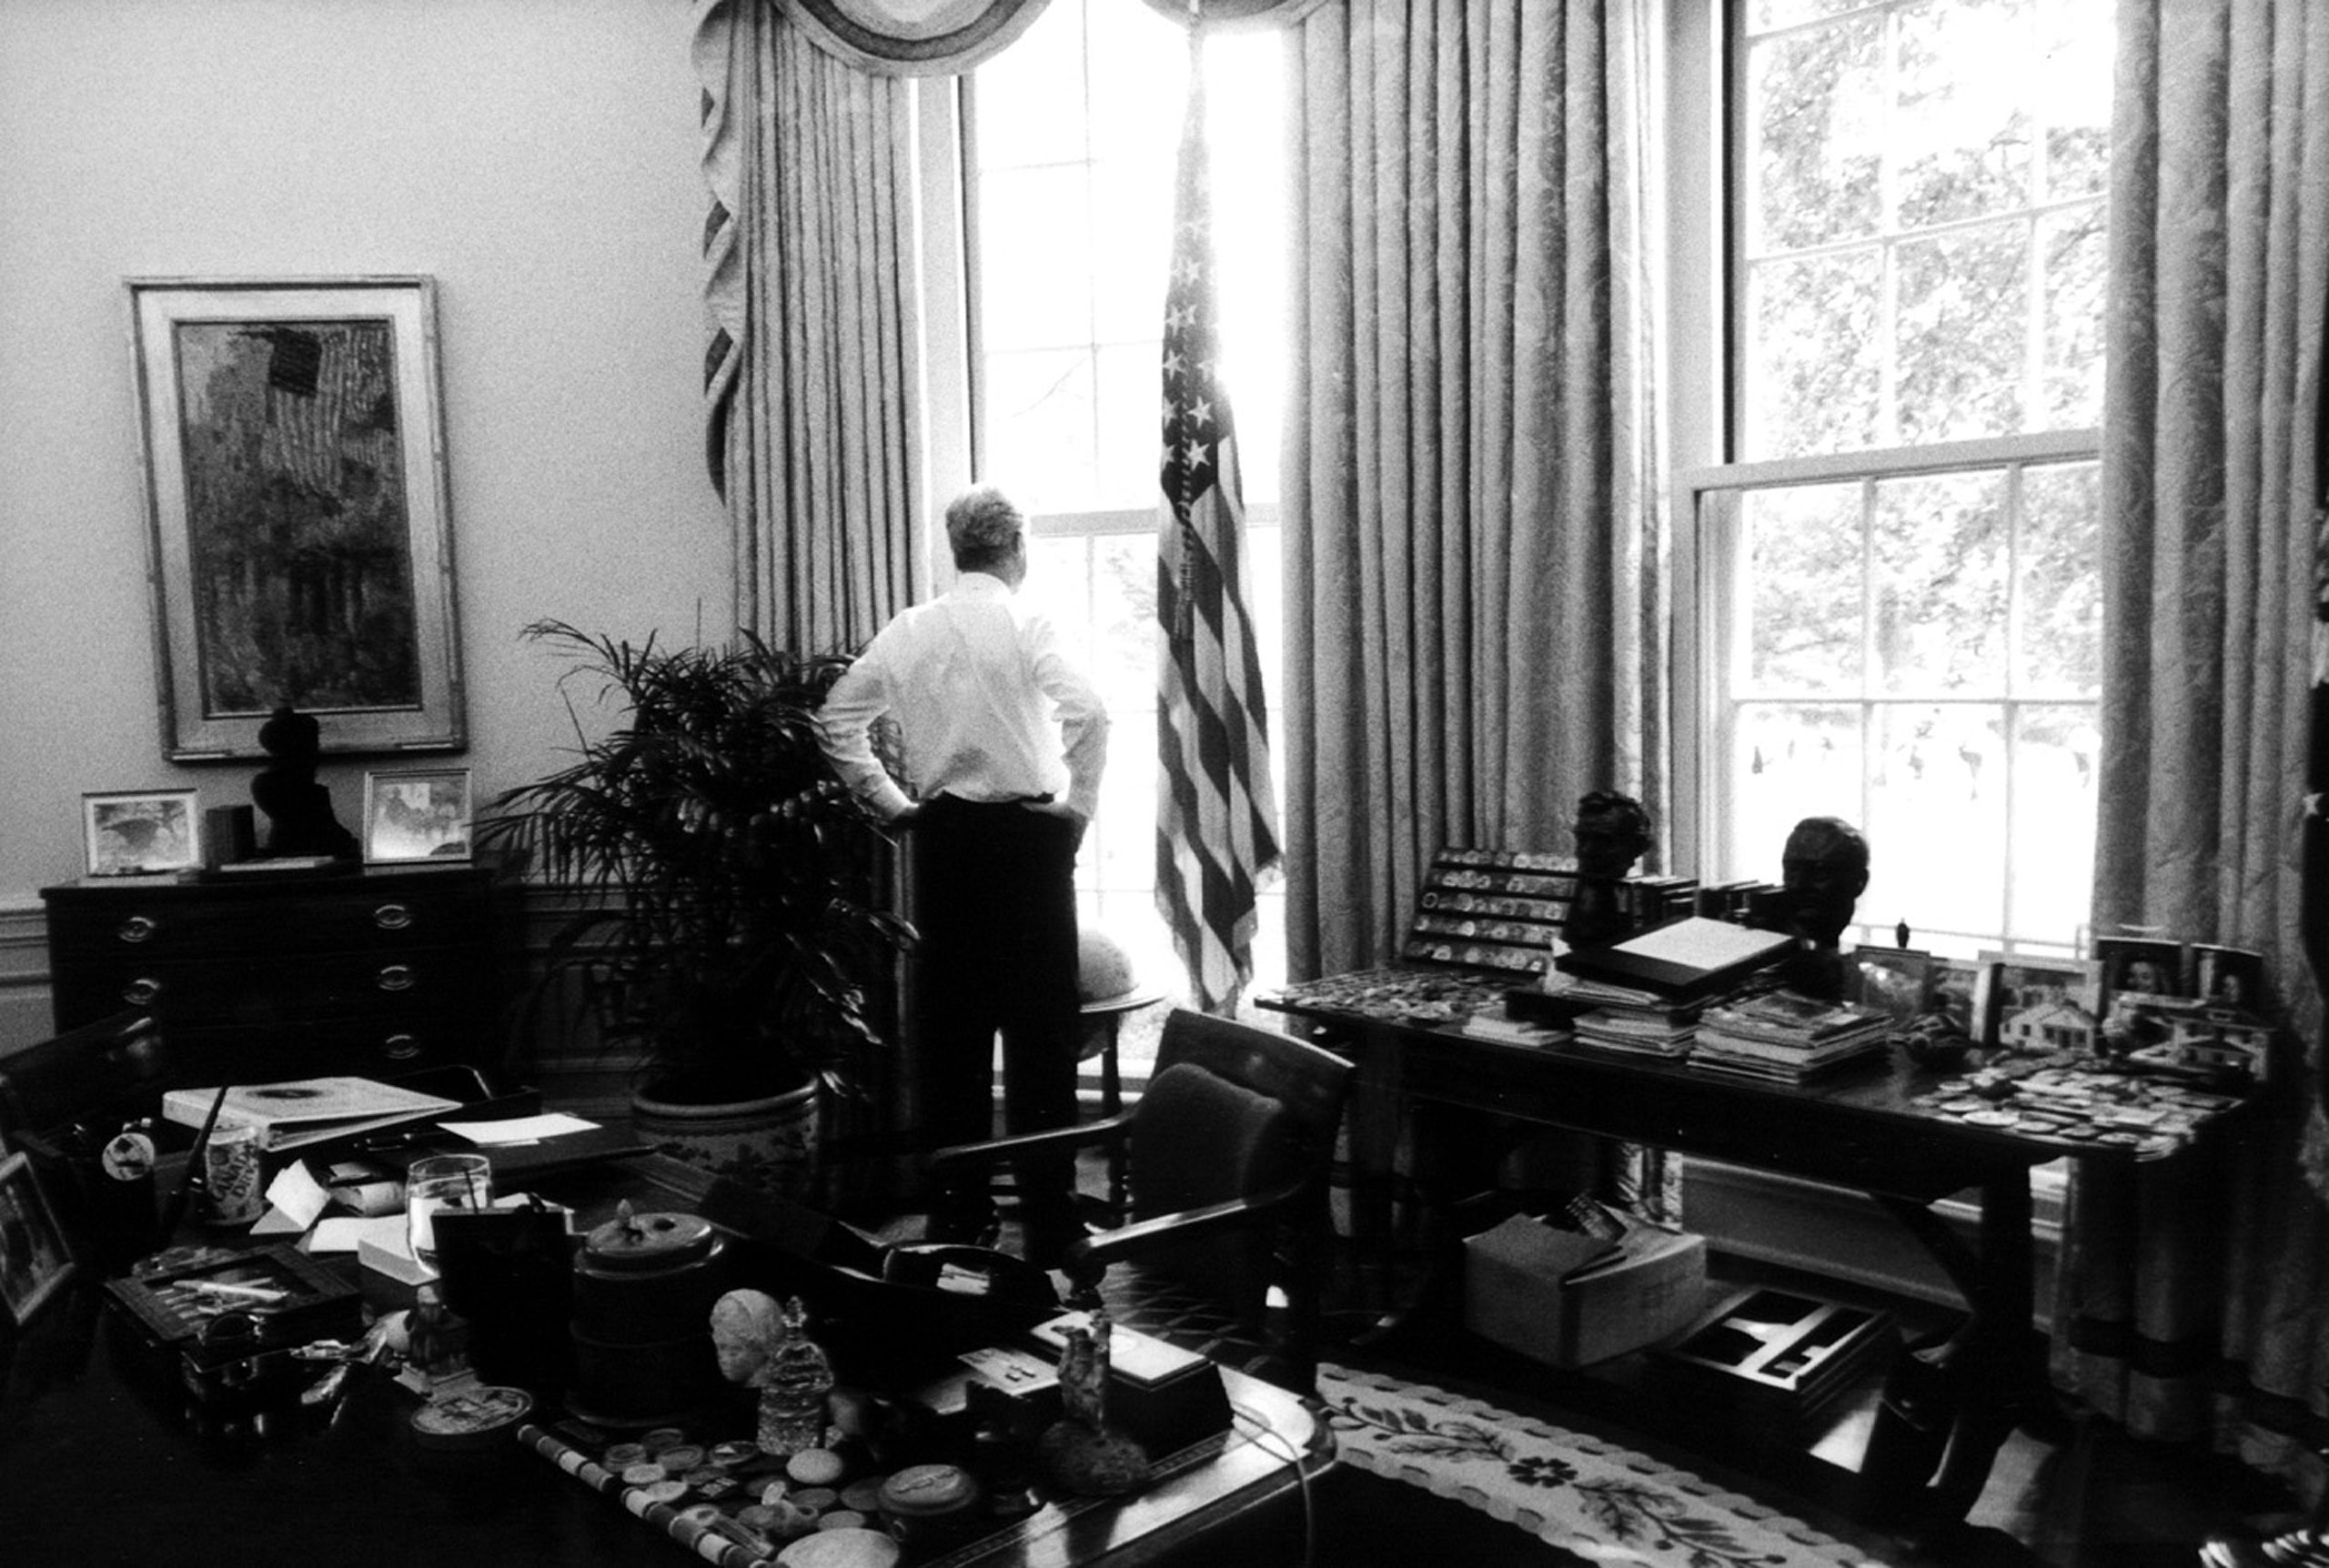 President Clinton in the Oval Office after an event on the South Lawn.